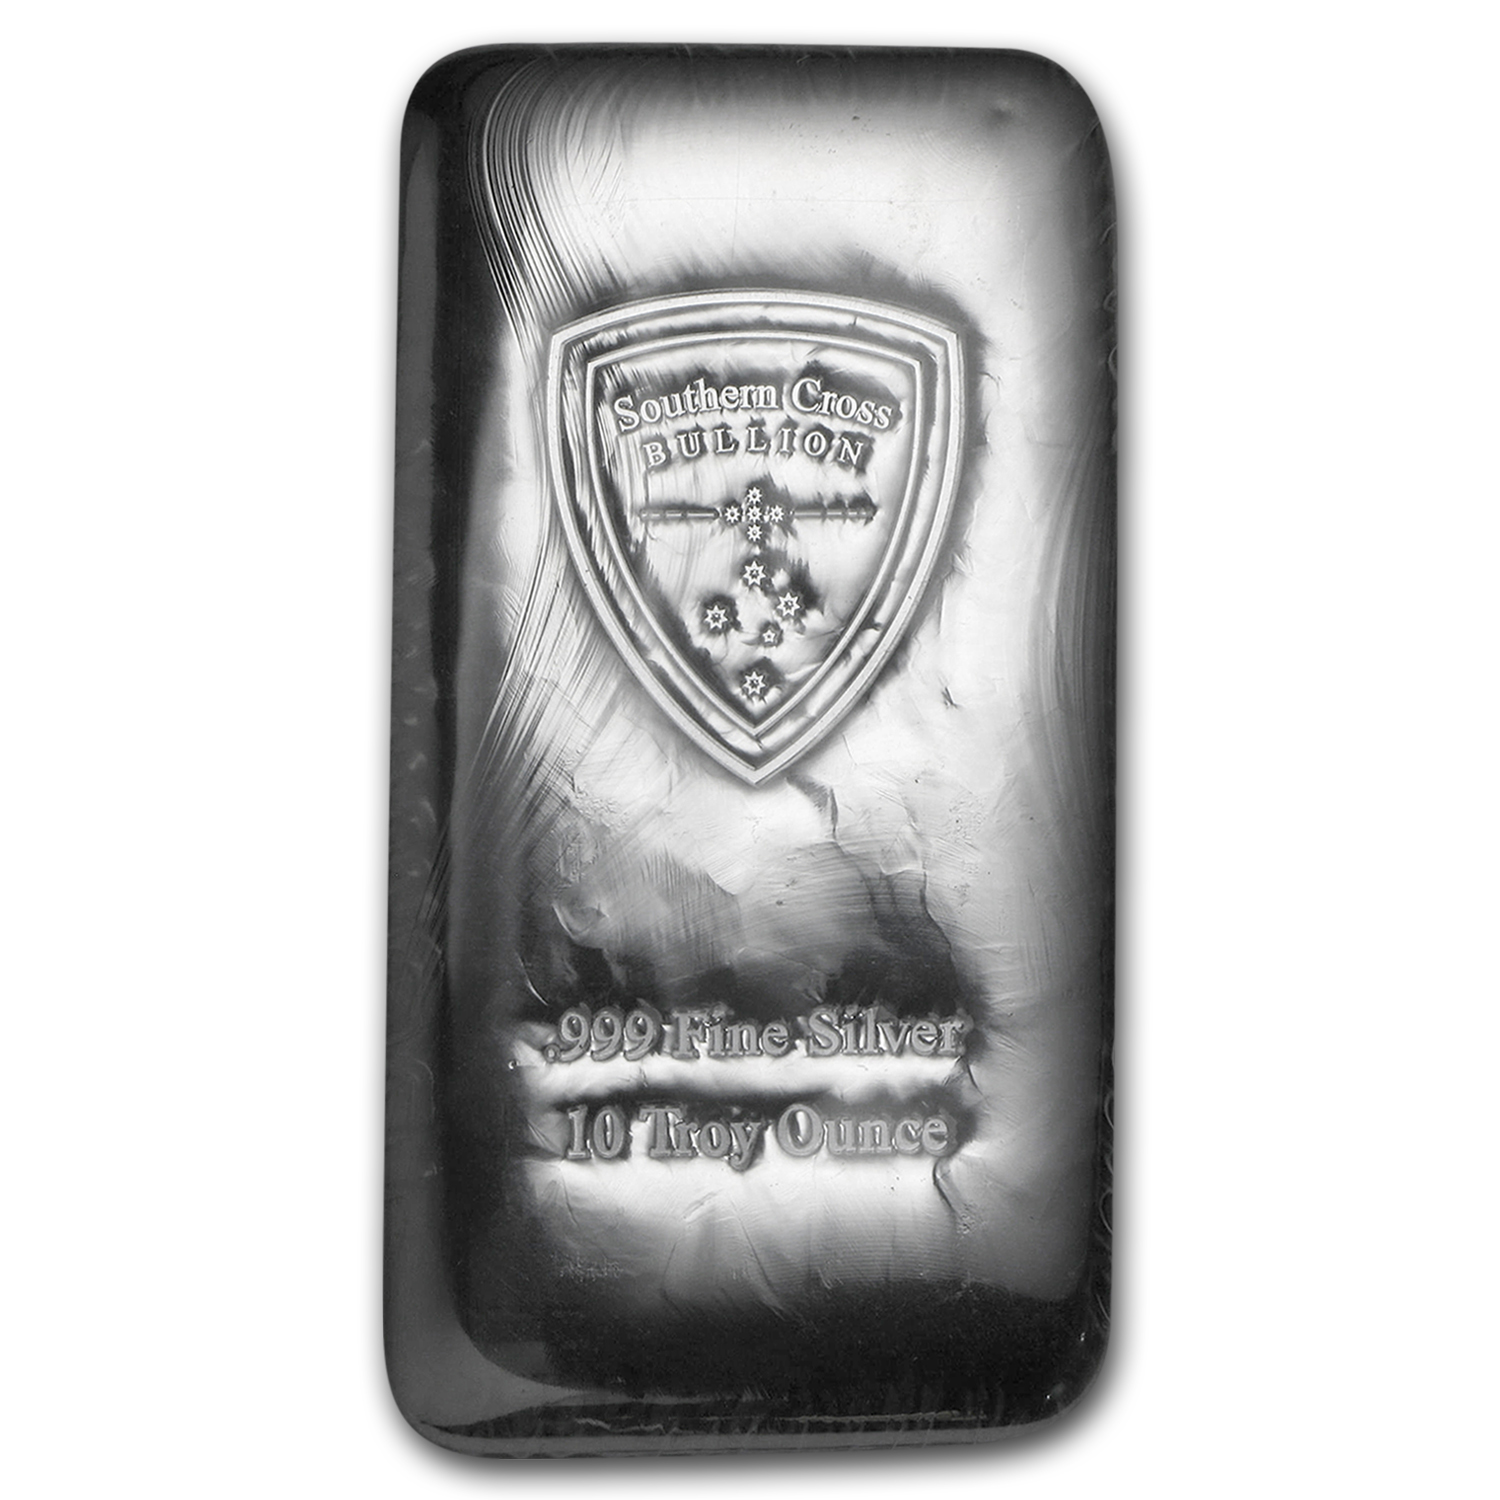 10 oz Silver Bar - Southern Cross Bullion (Cast)